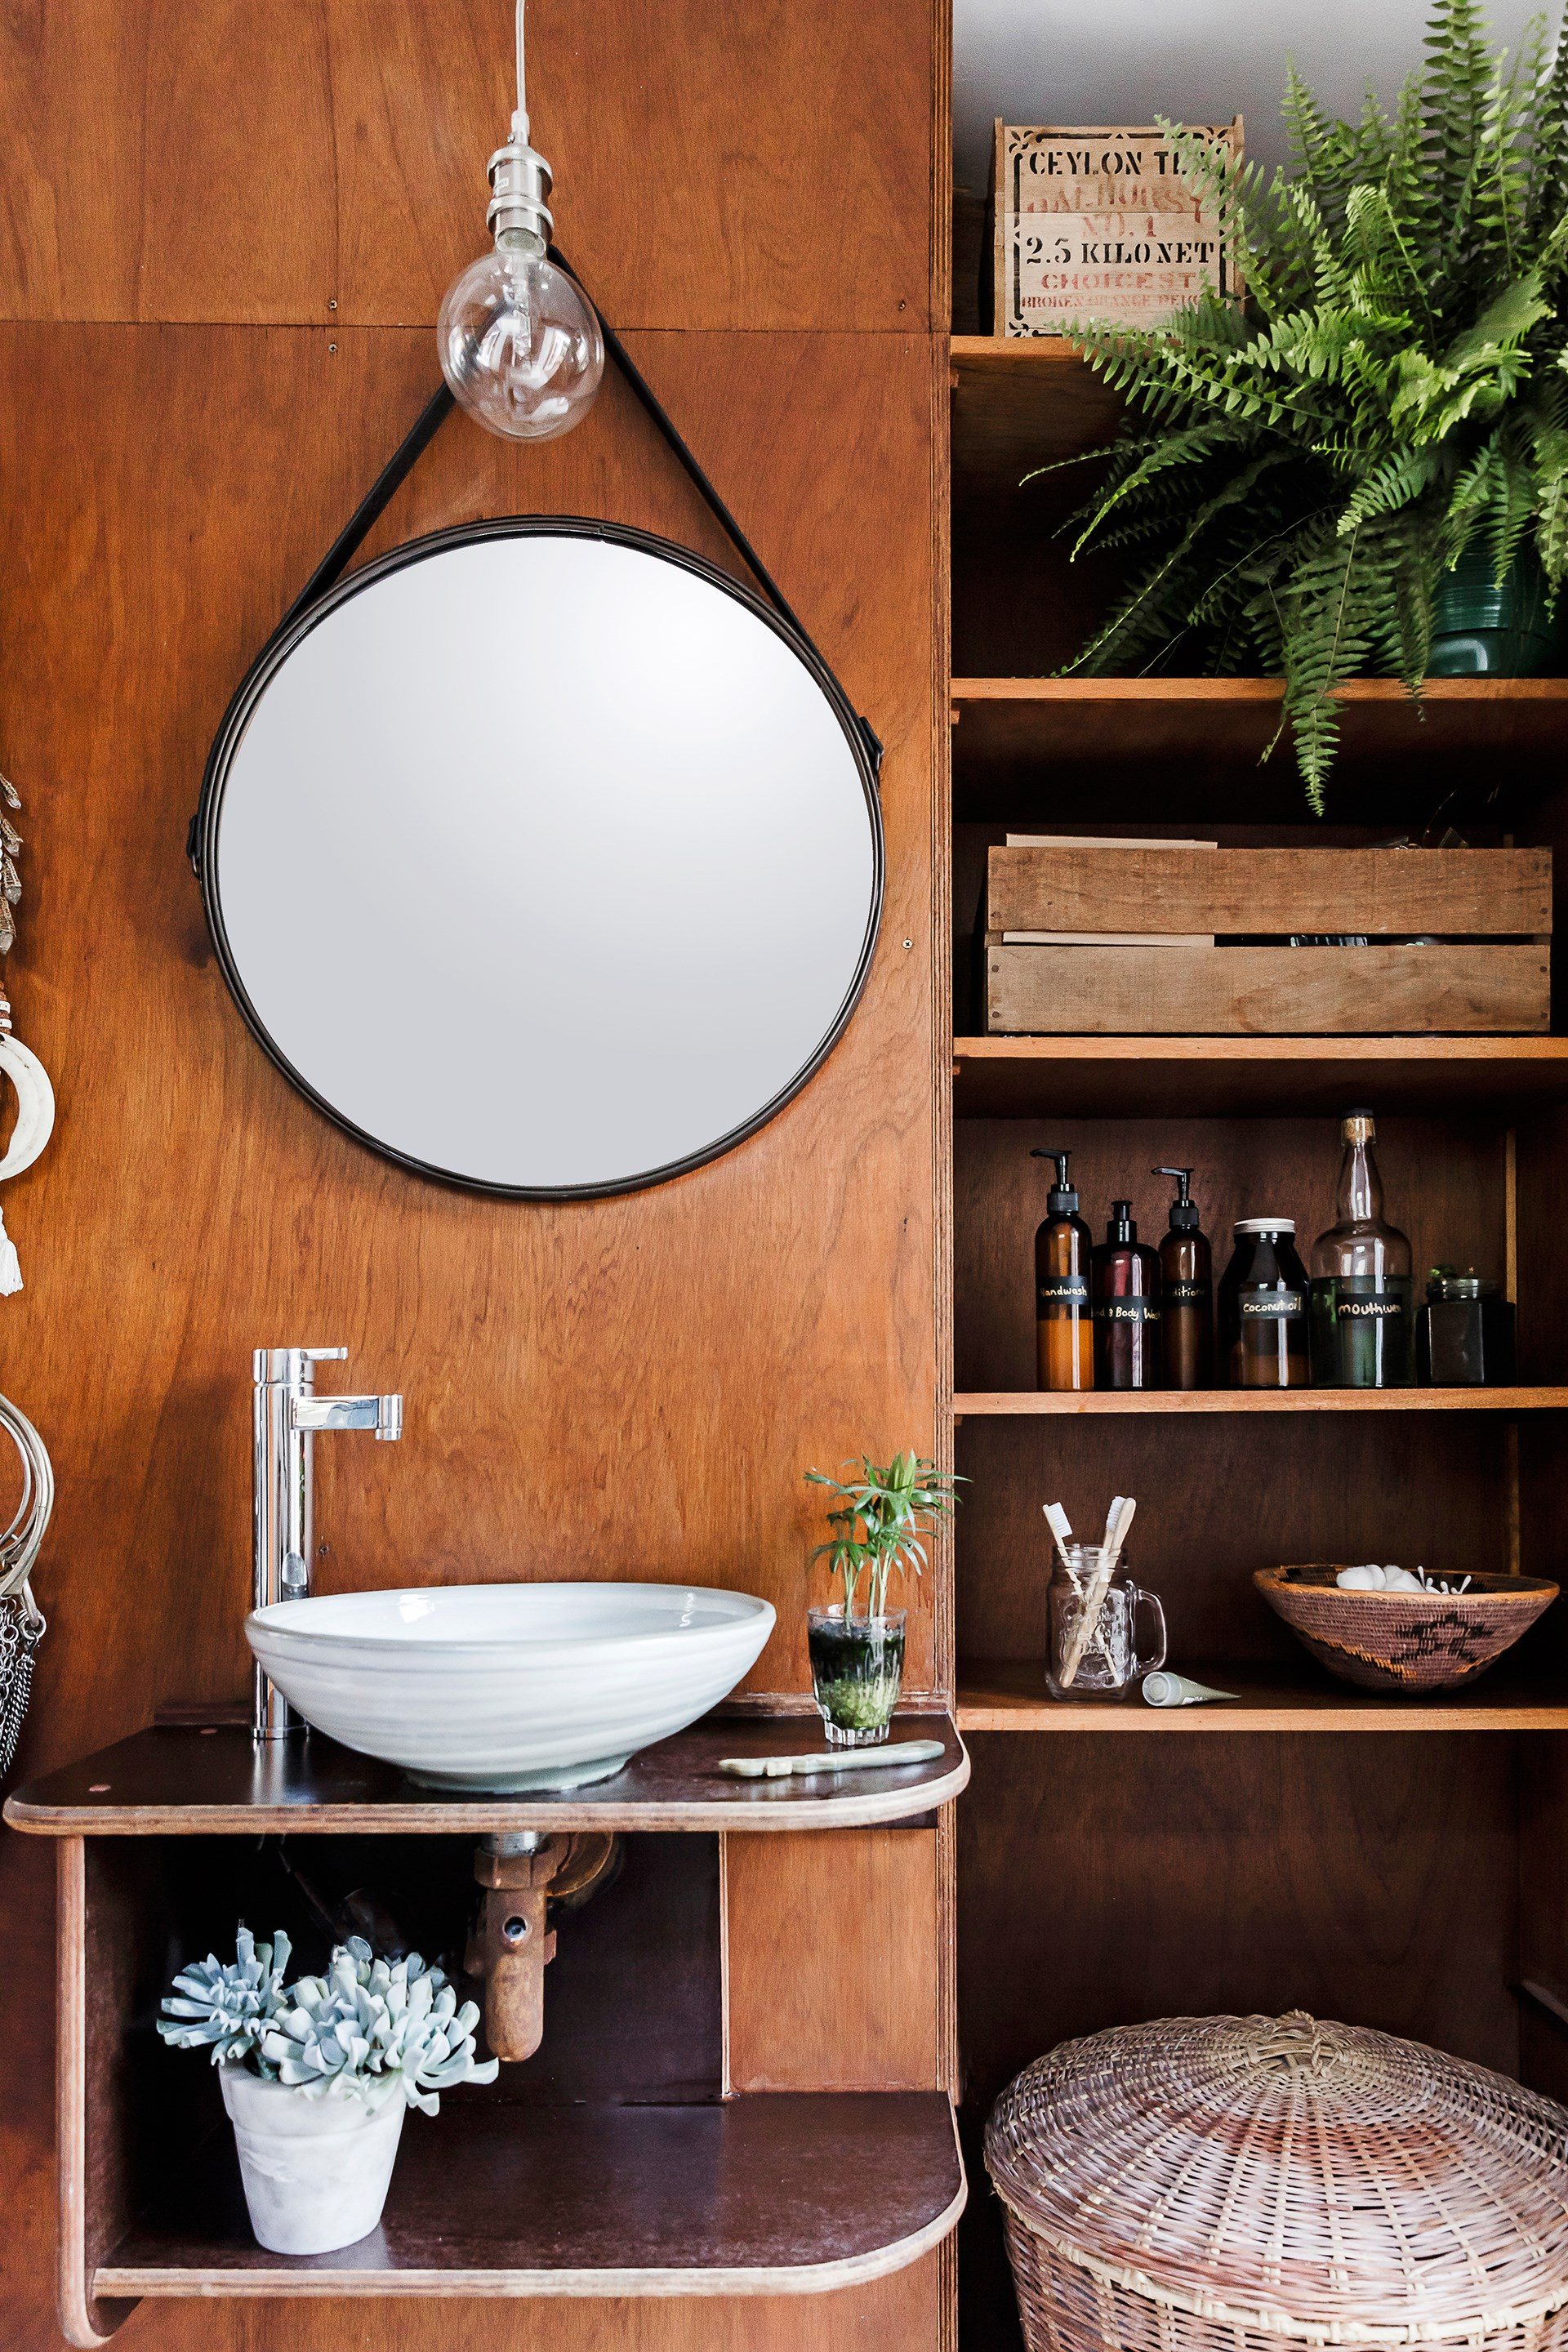 Whichever room you decorate, catch yourself before you fall for the default option. You don't have to use tiles in the bathroom. You don't have to use a traditional vanity. Consider alternative finishes such as timber and eclectic second-hand finds to create a rustic, coastal bathroom. *Photo: Maree Homer*